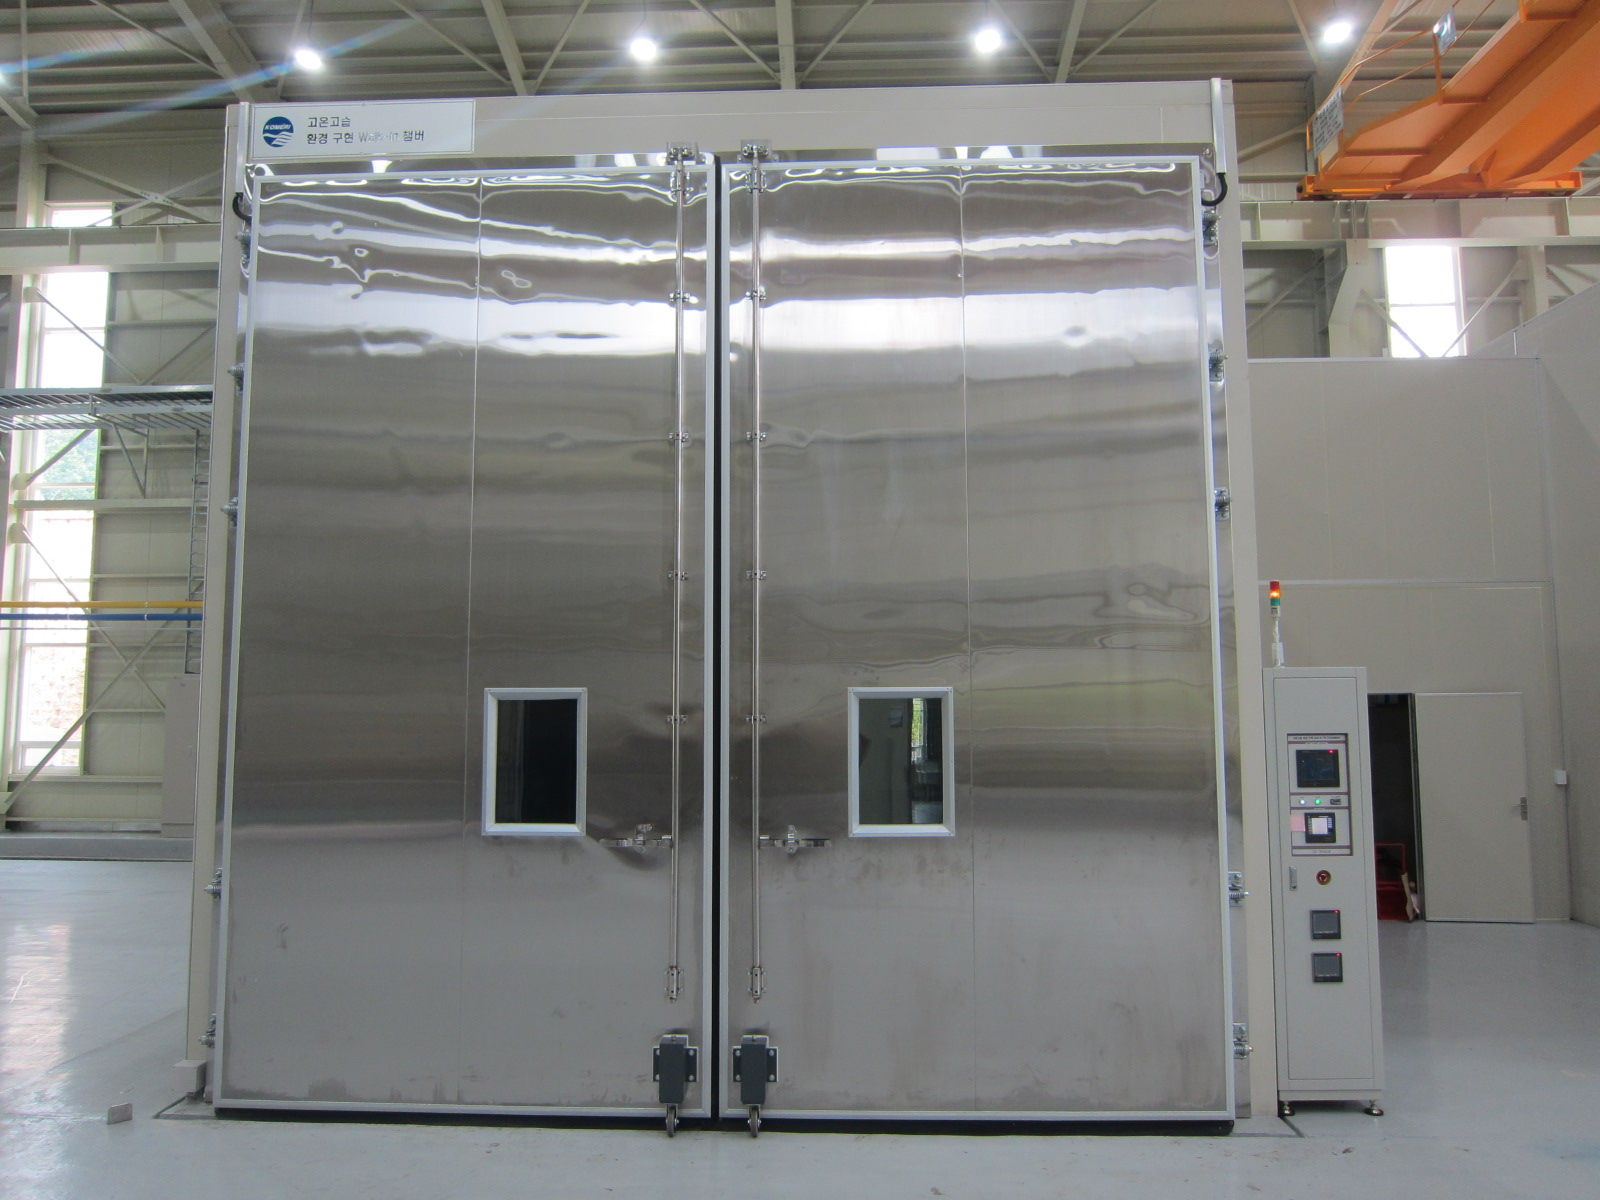 Walk-in chamber for high temperature and high humidity environment